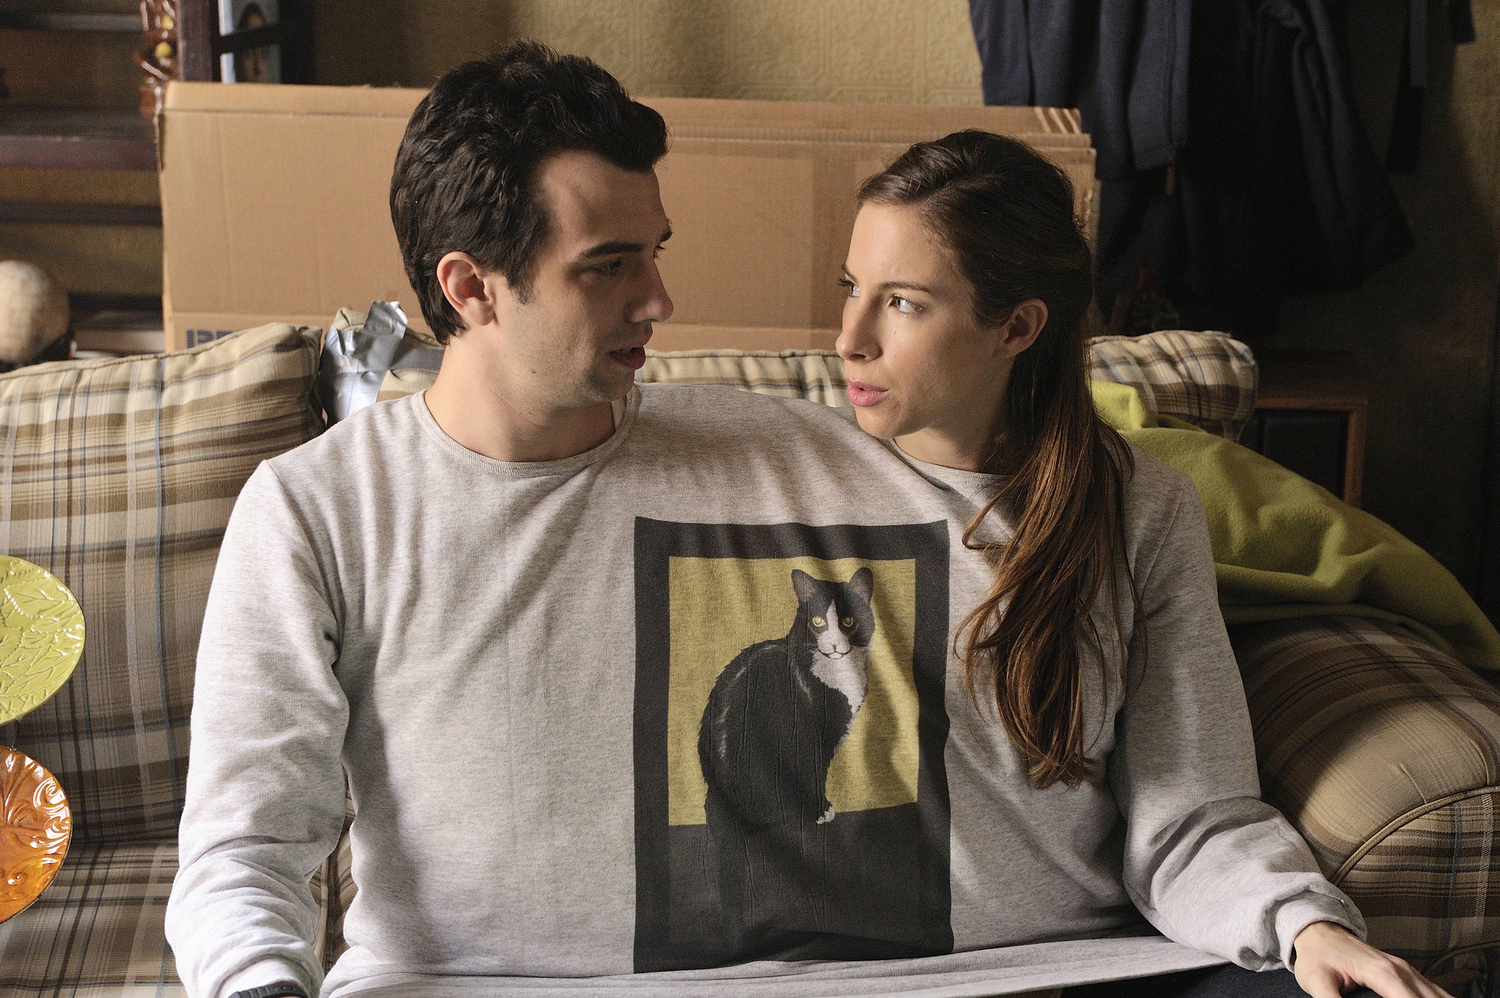 Man seeking women tv show